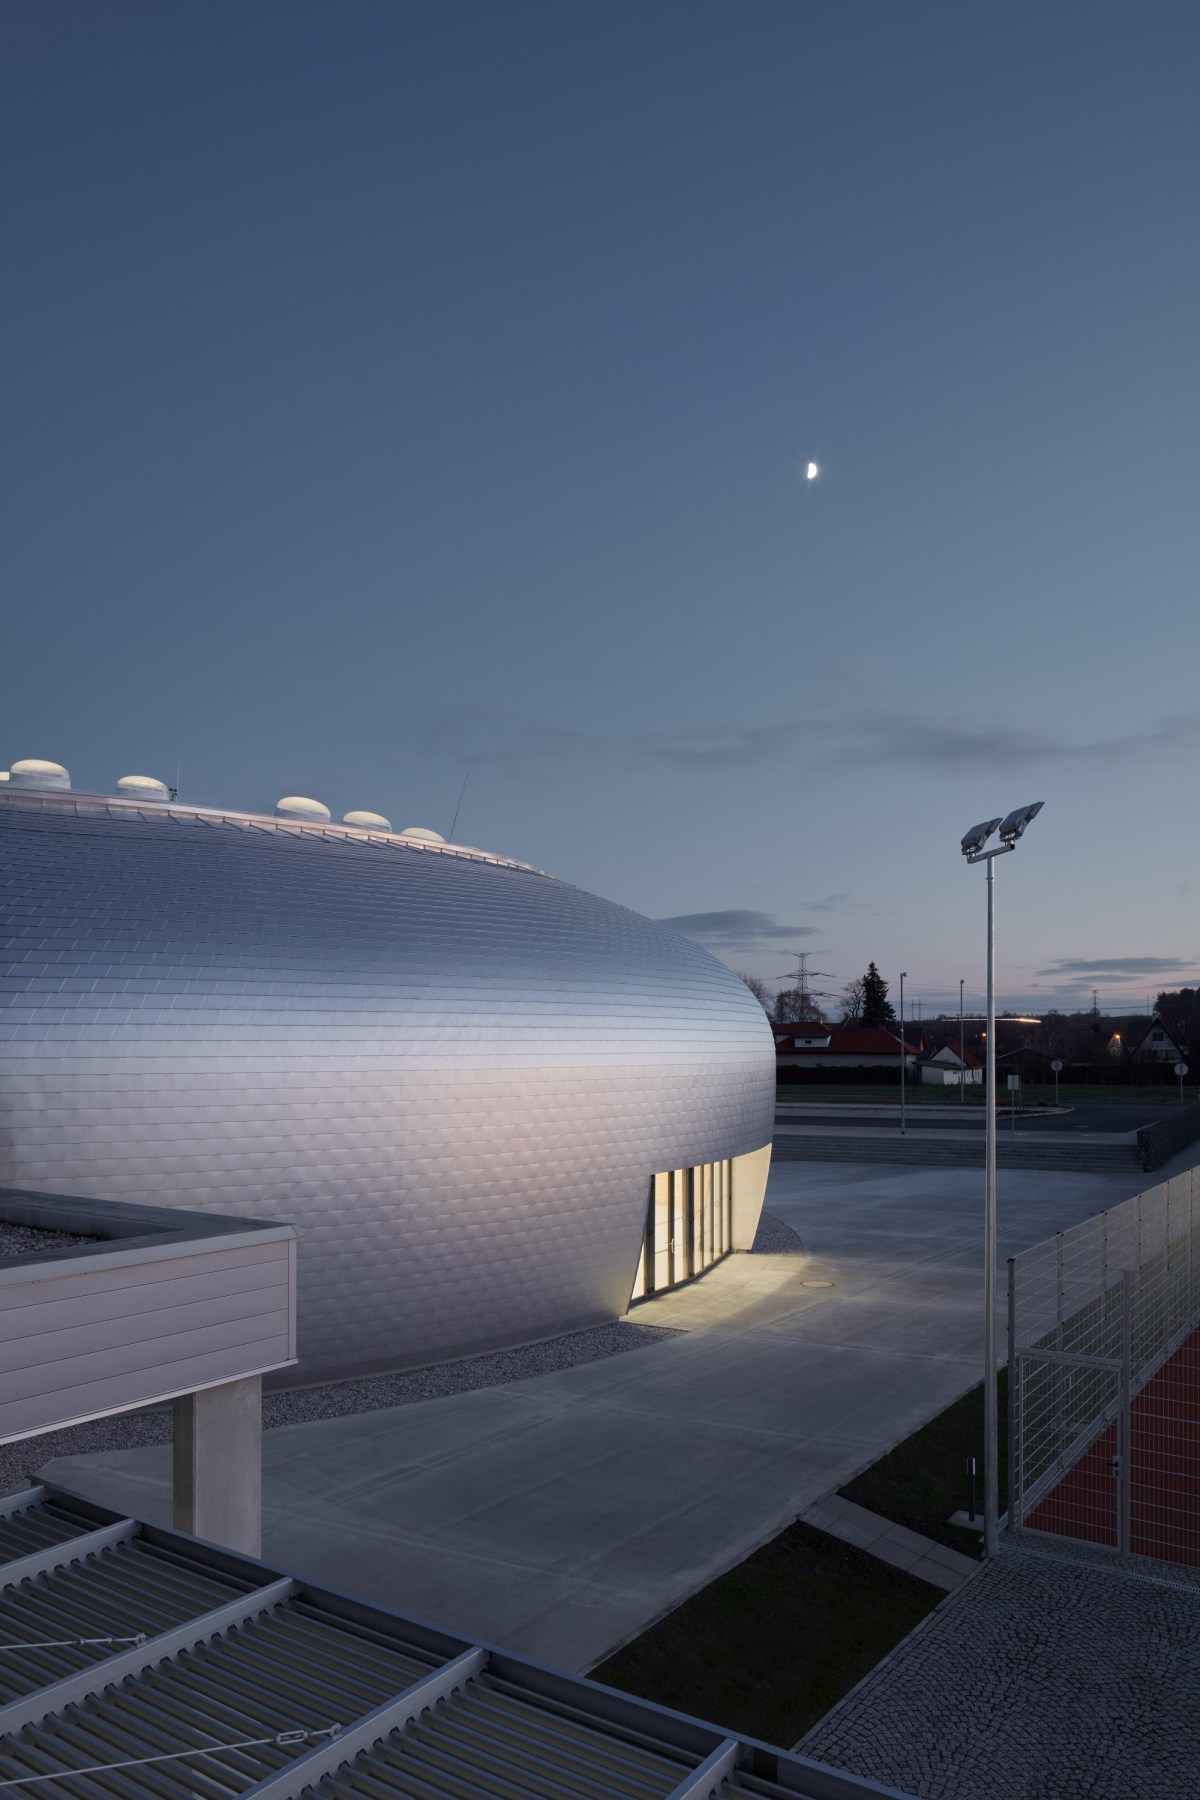 ovoid-sports-dome-moss-and-fog-13